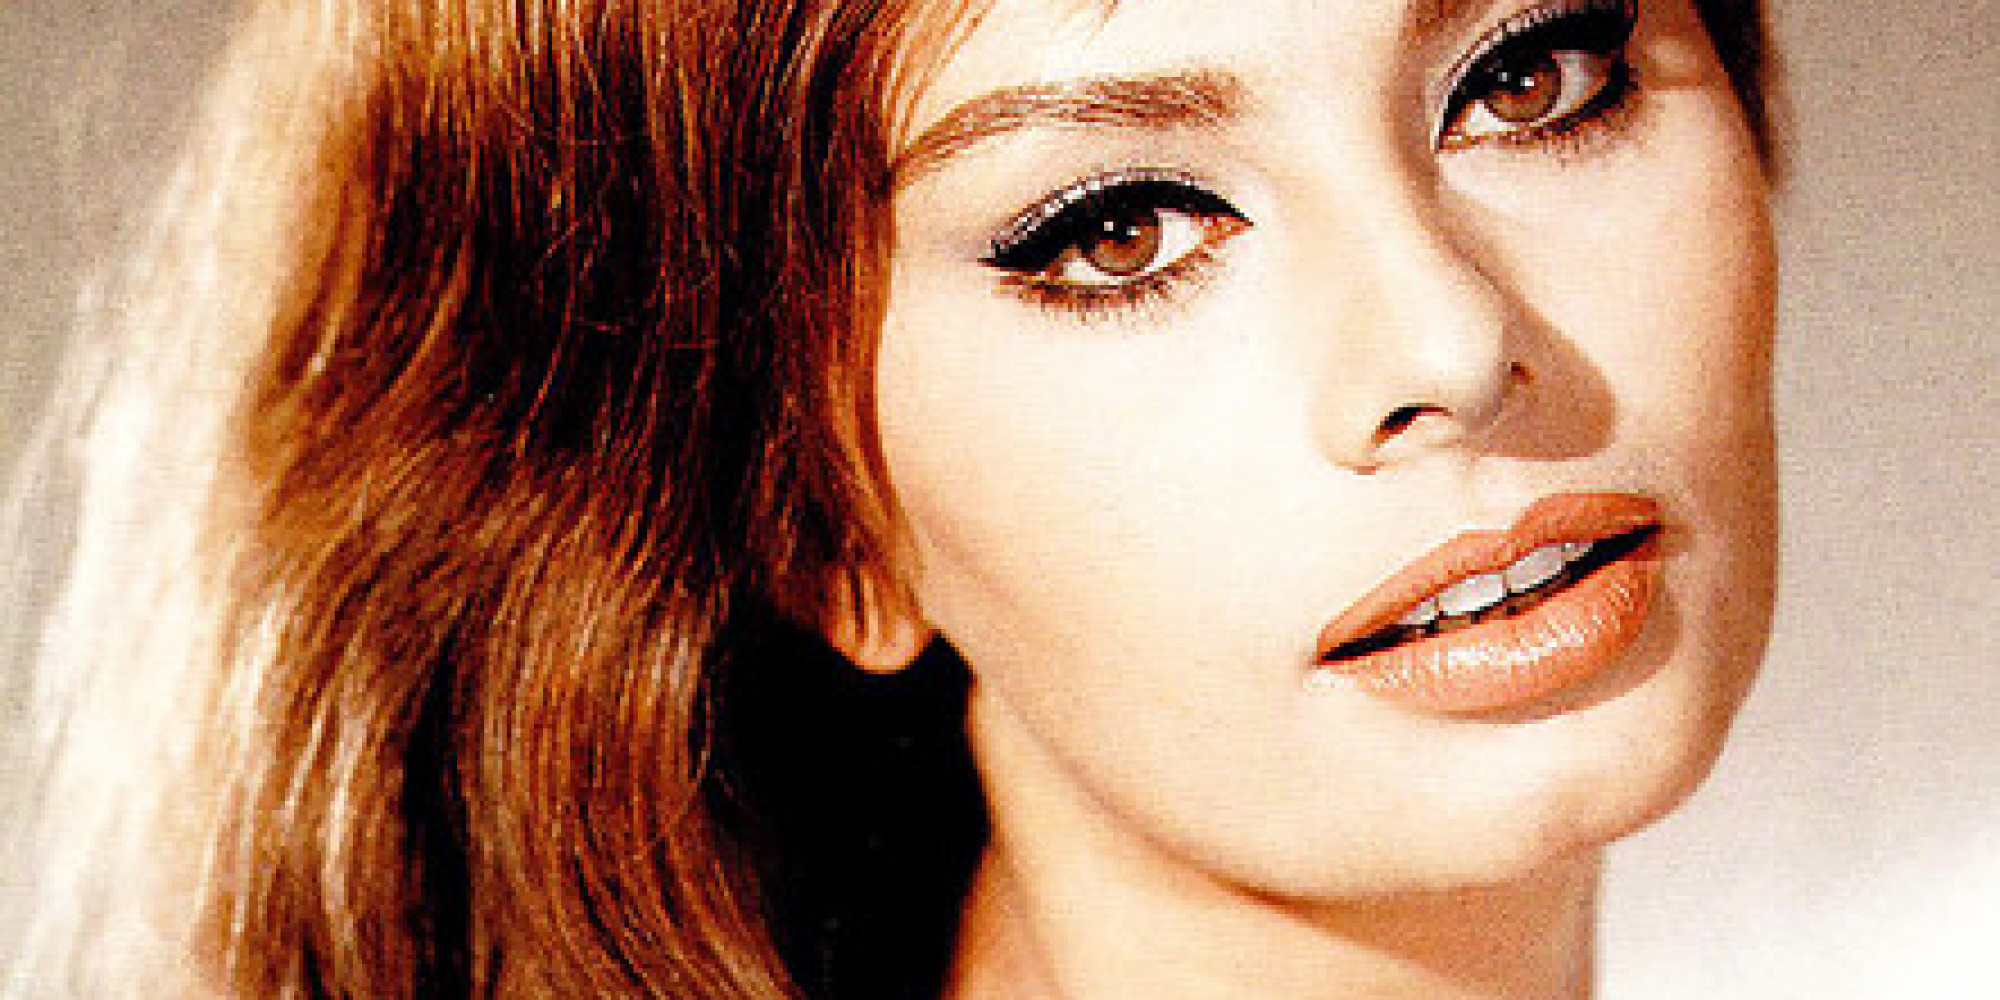 9 beauty icons you can easily be for halloween huffpost - Sophia Loren Hair Color